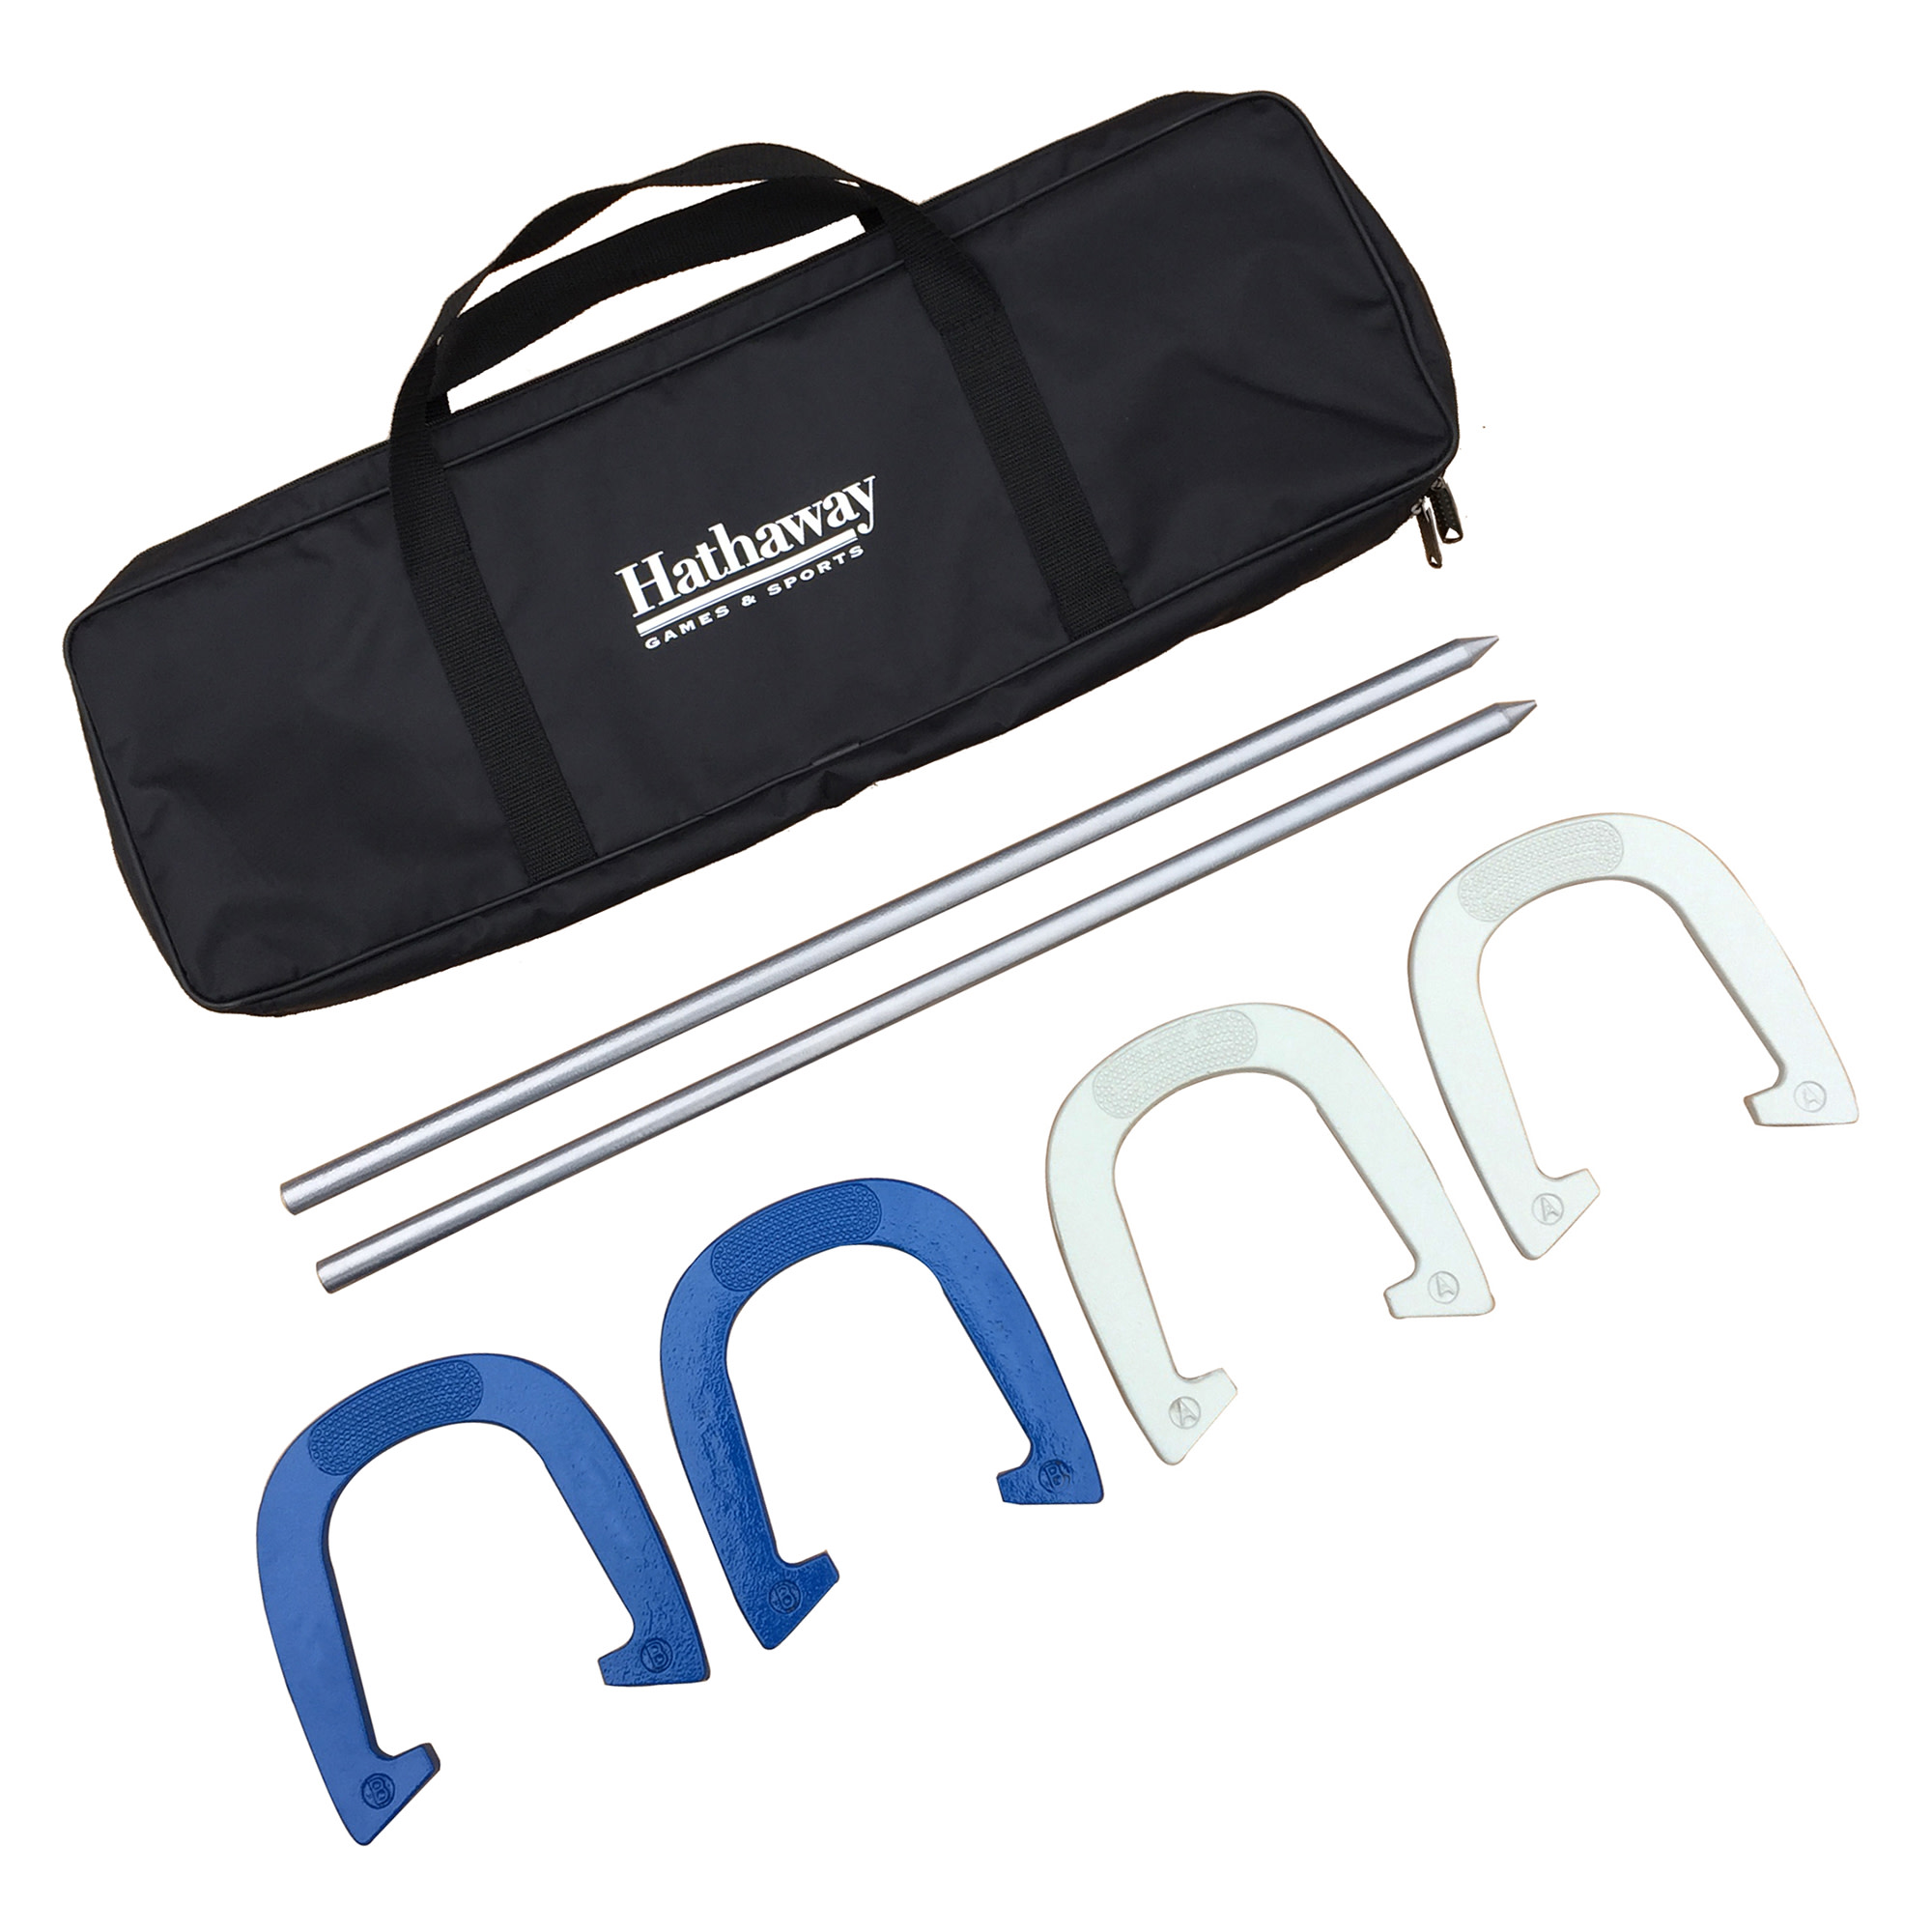 Hathaway Heavy Duty Horseshoe Set w/4 Horseshoes, 2 Steel Stakes, & Nylon Carry Bag - Silver & Blue